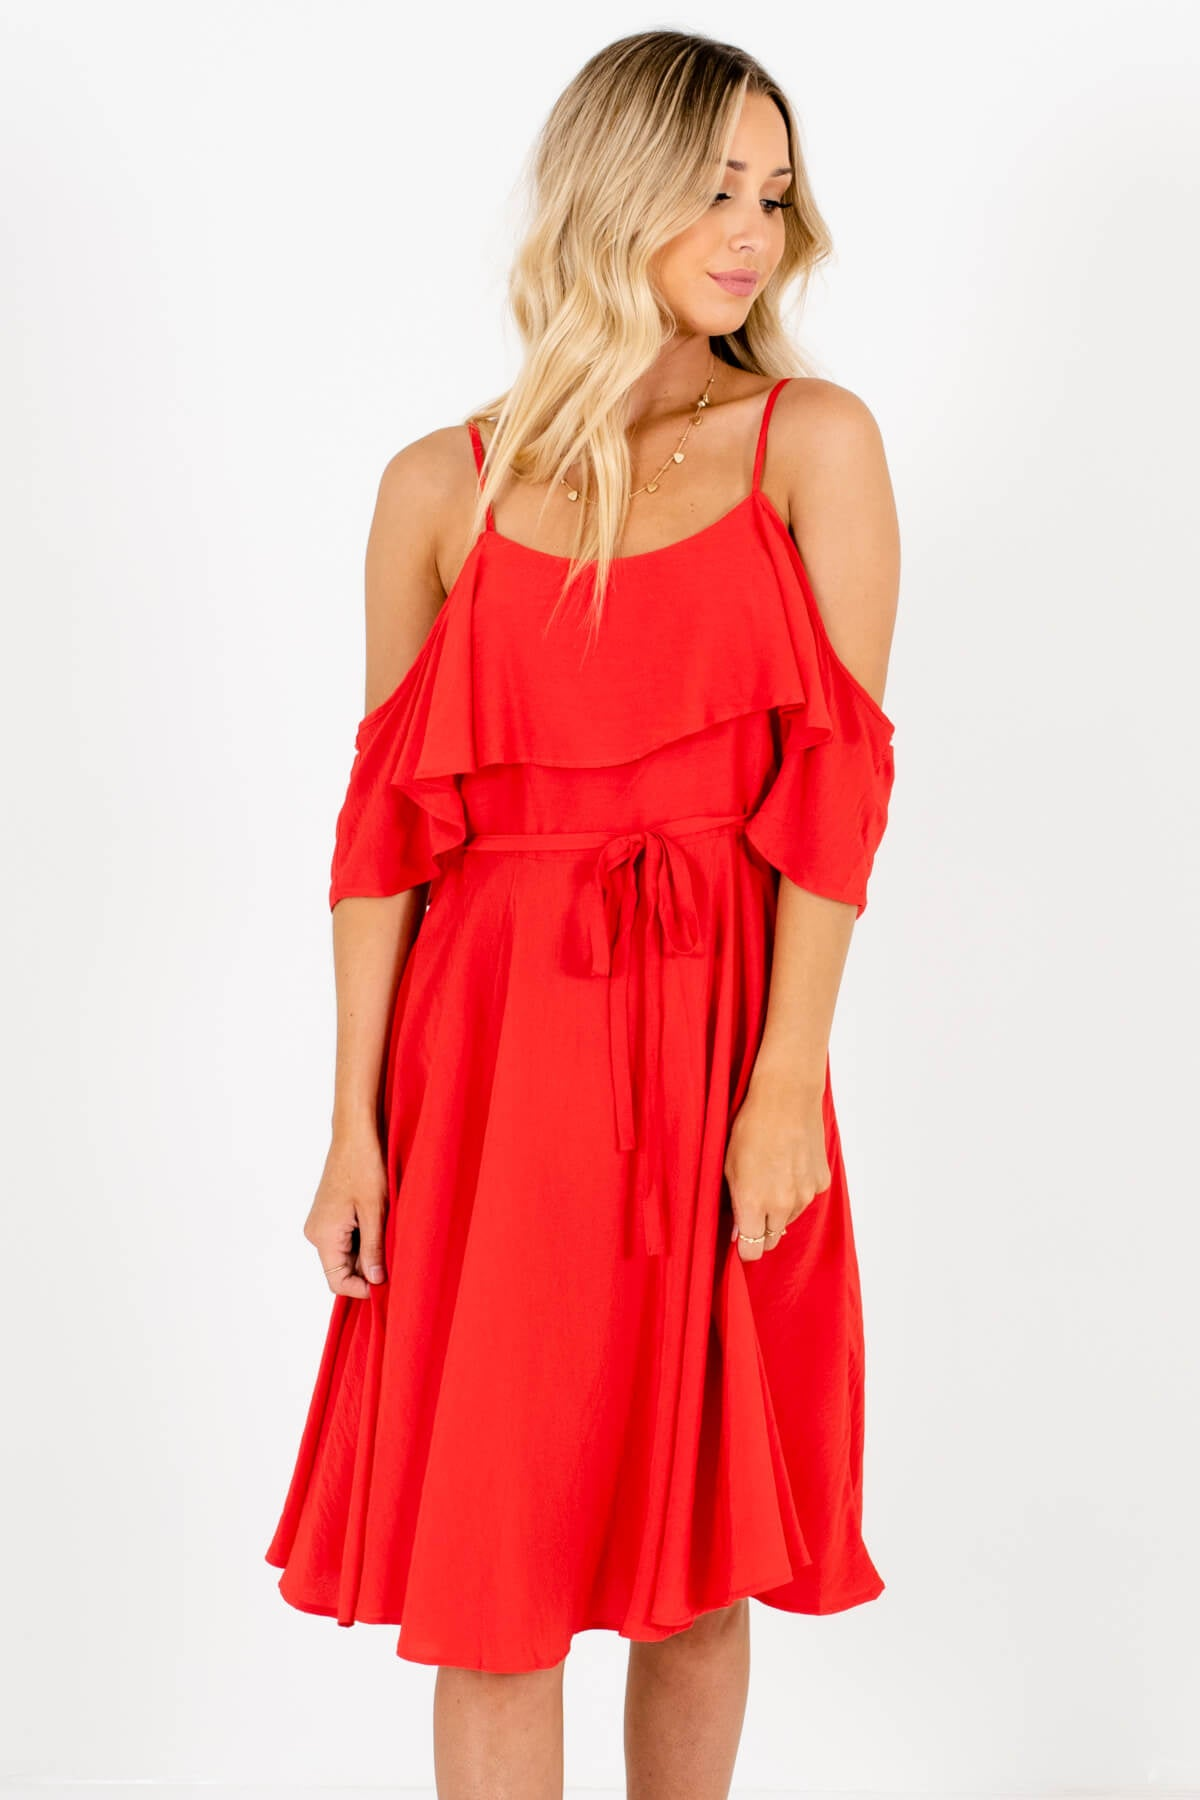 Red Cold Shoulder Style Boutique Knee-Length Dresses for Women